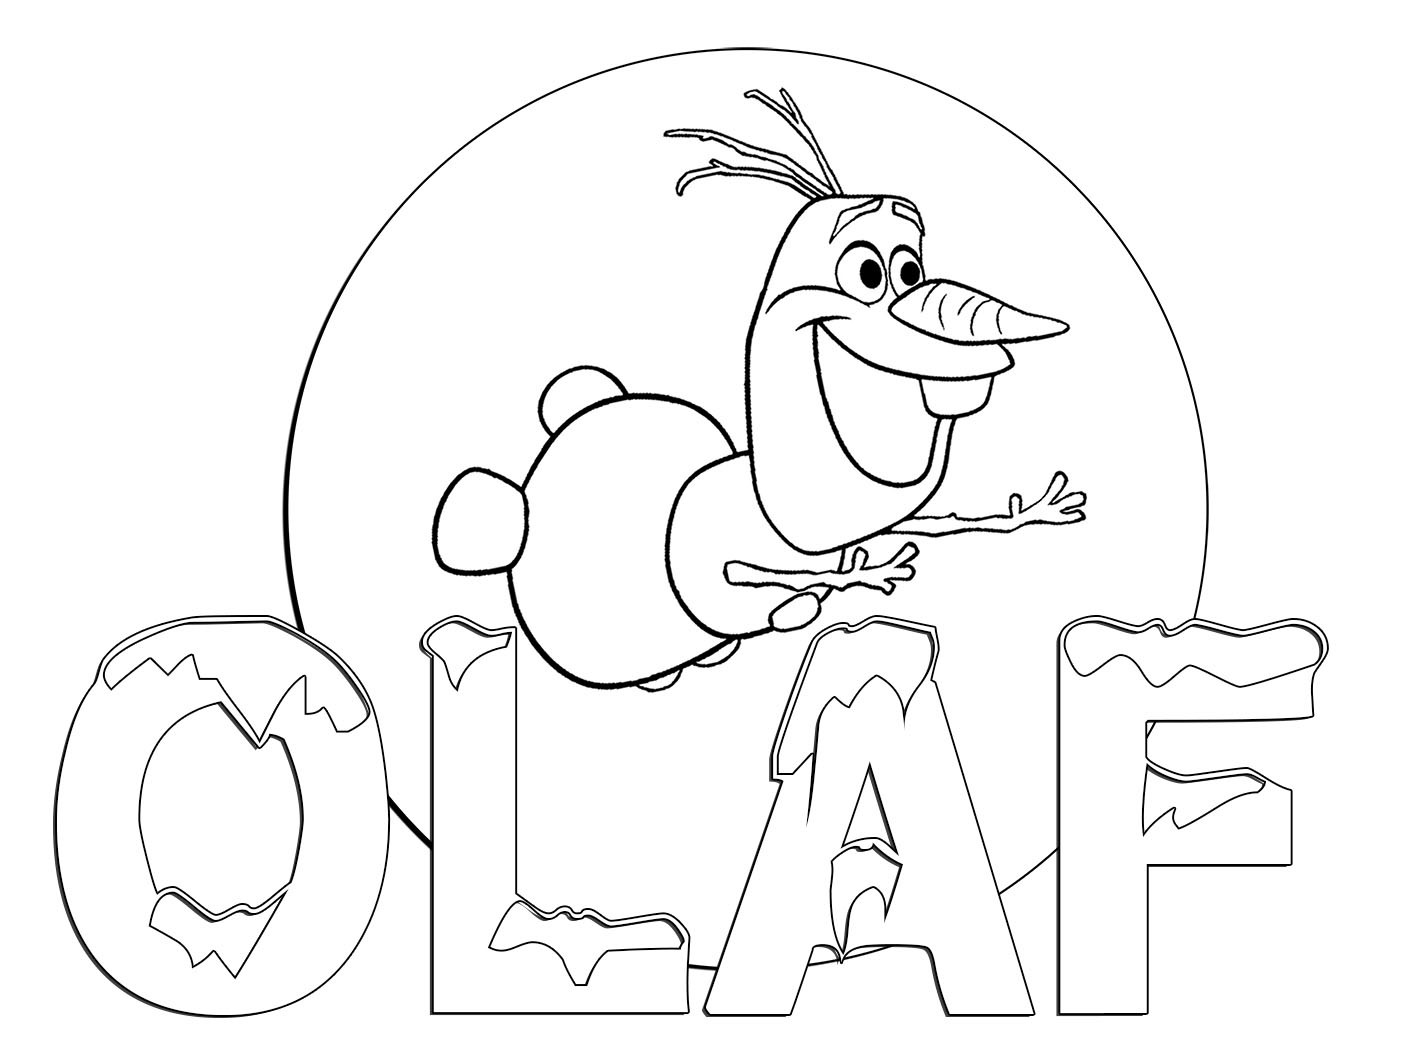 Coloring pages frozen - Olaf Coloring Page